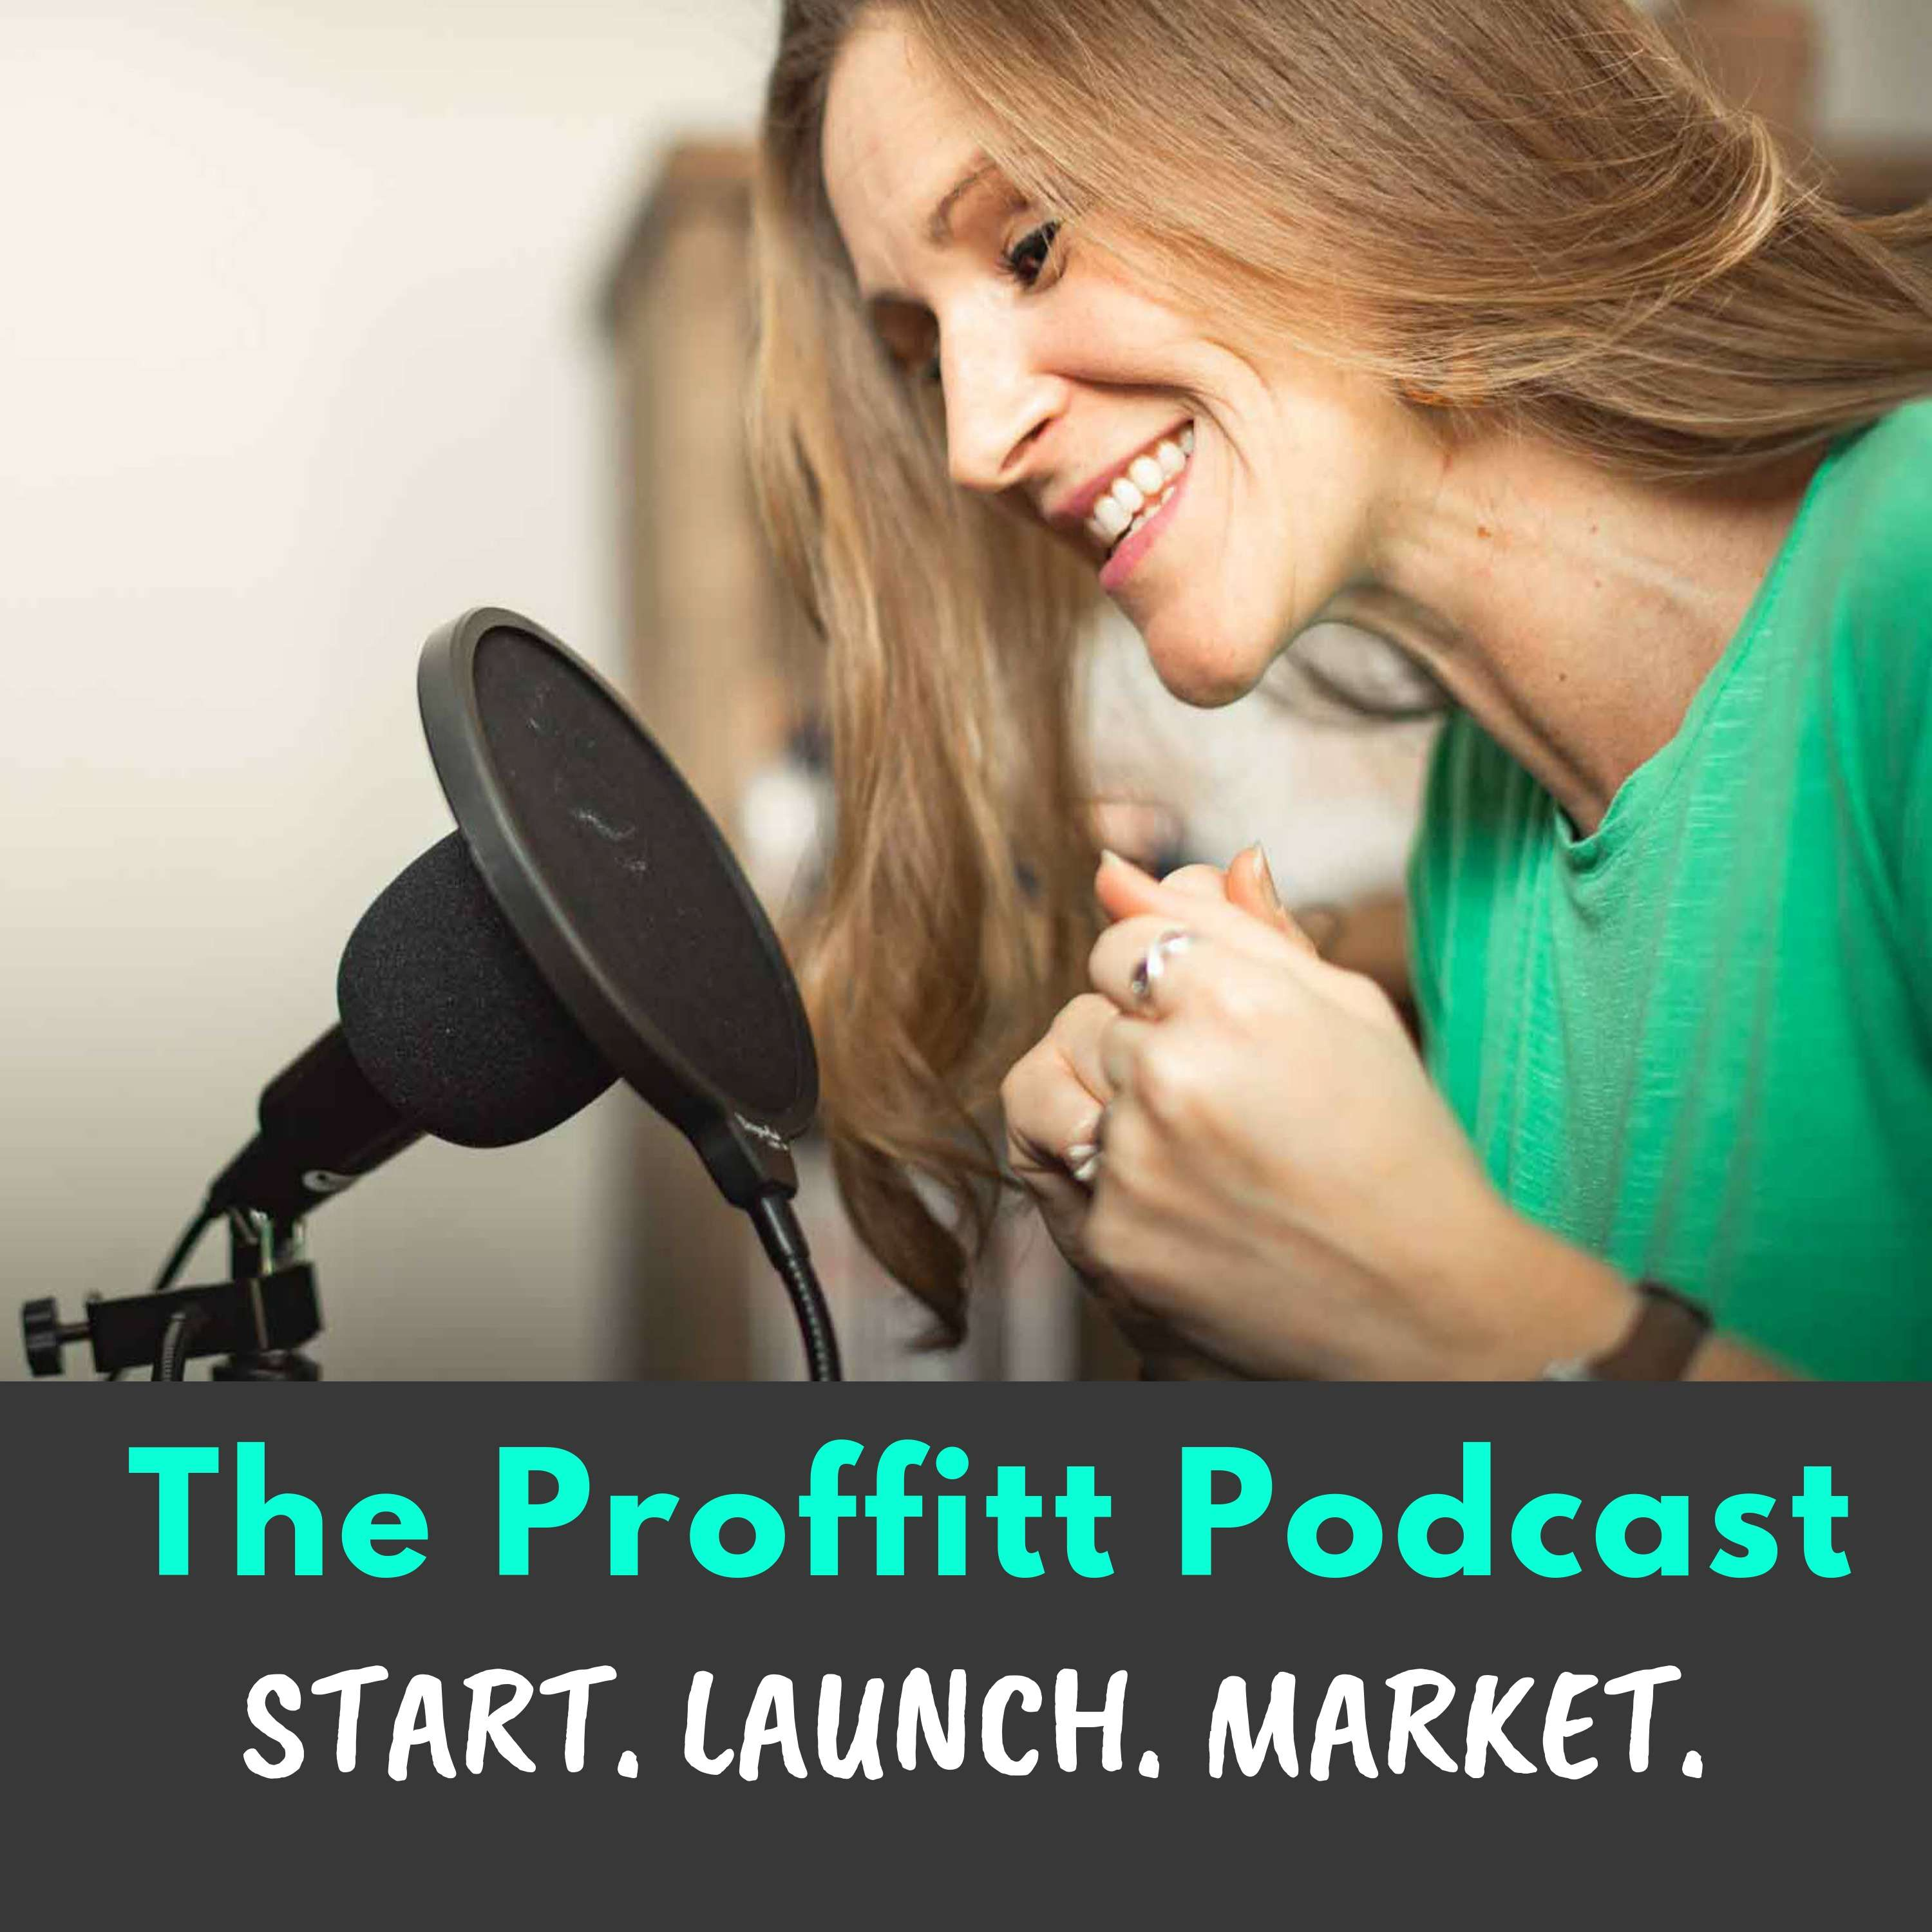 Strategic Podcast Partners: Why You Need One